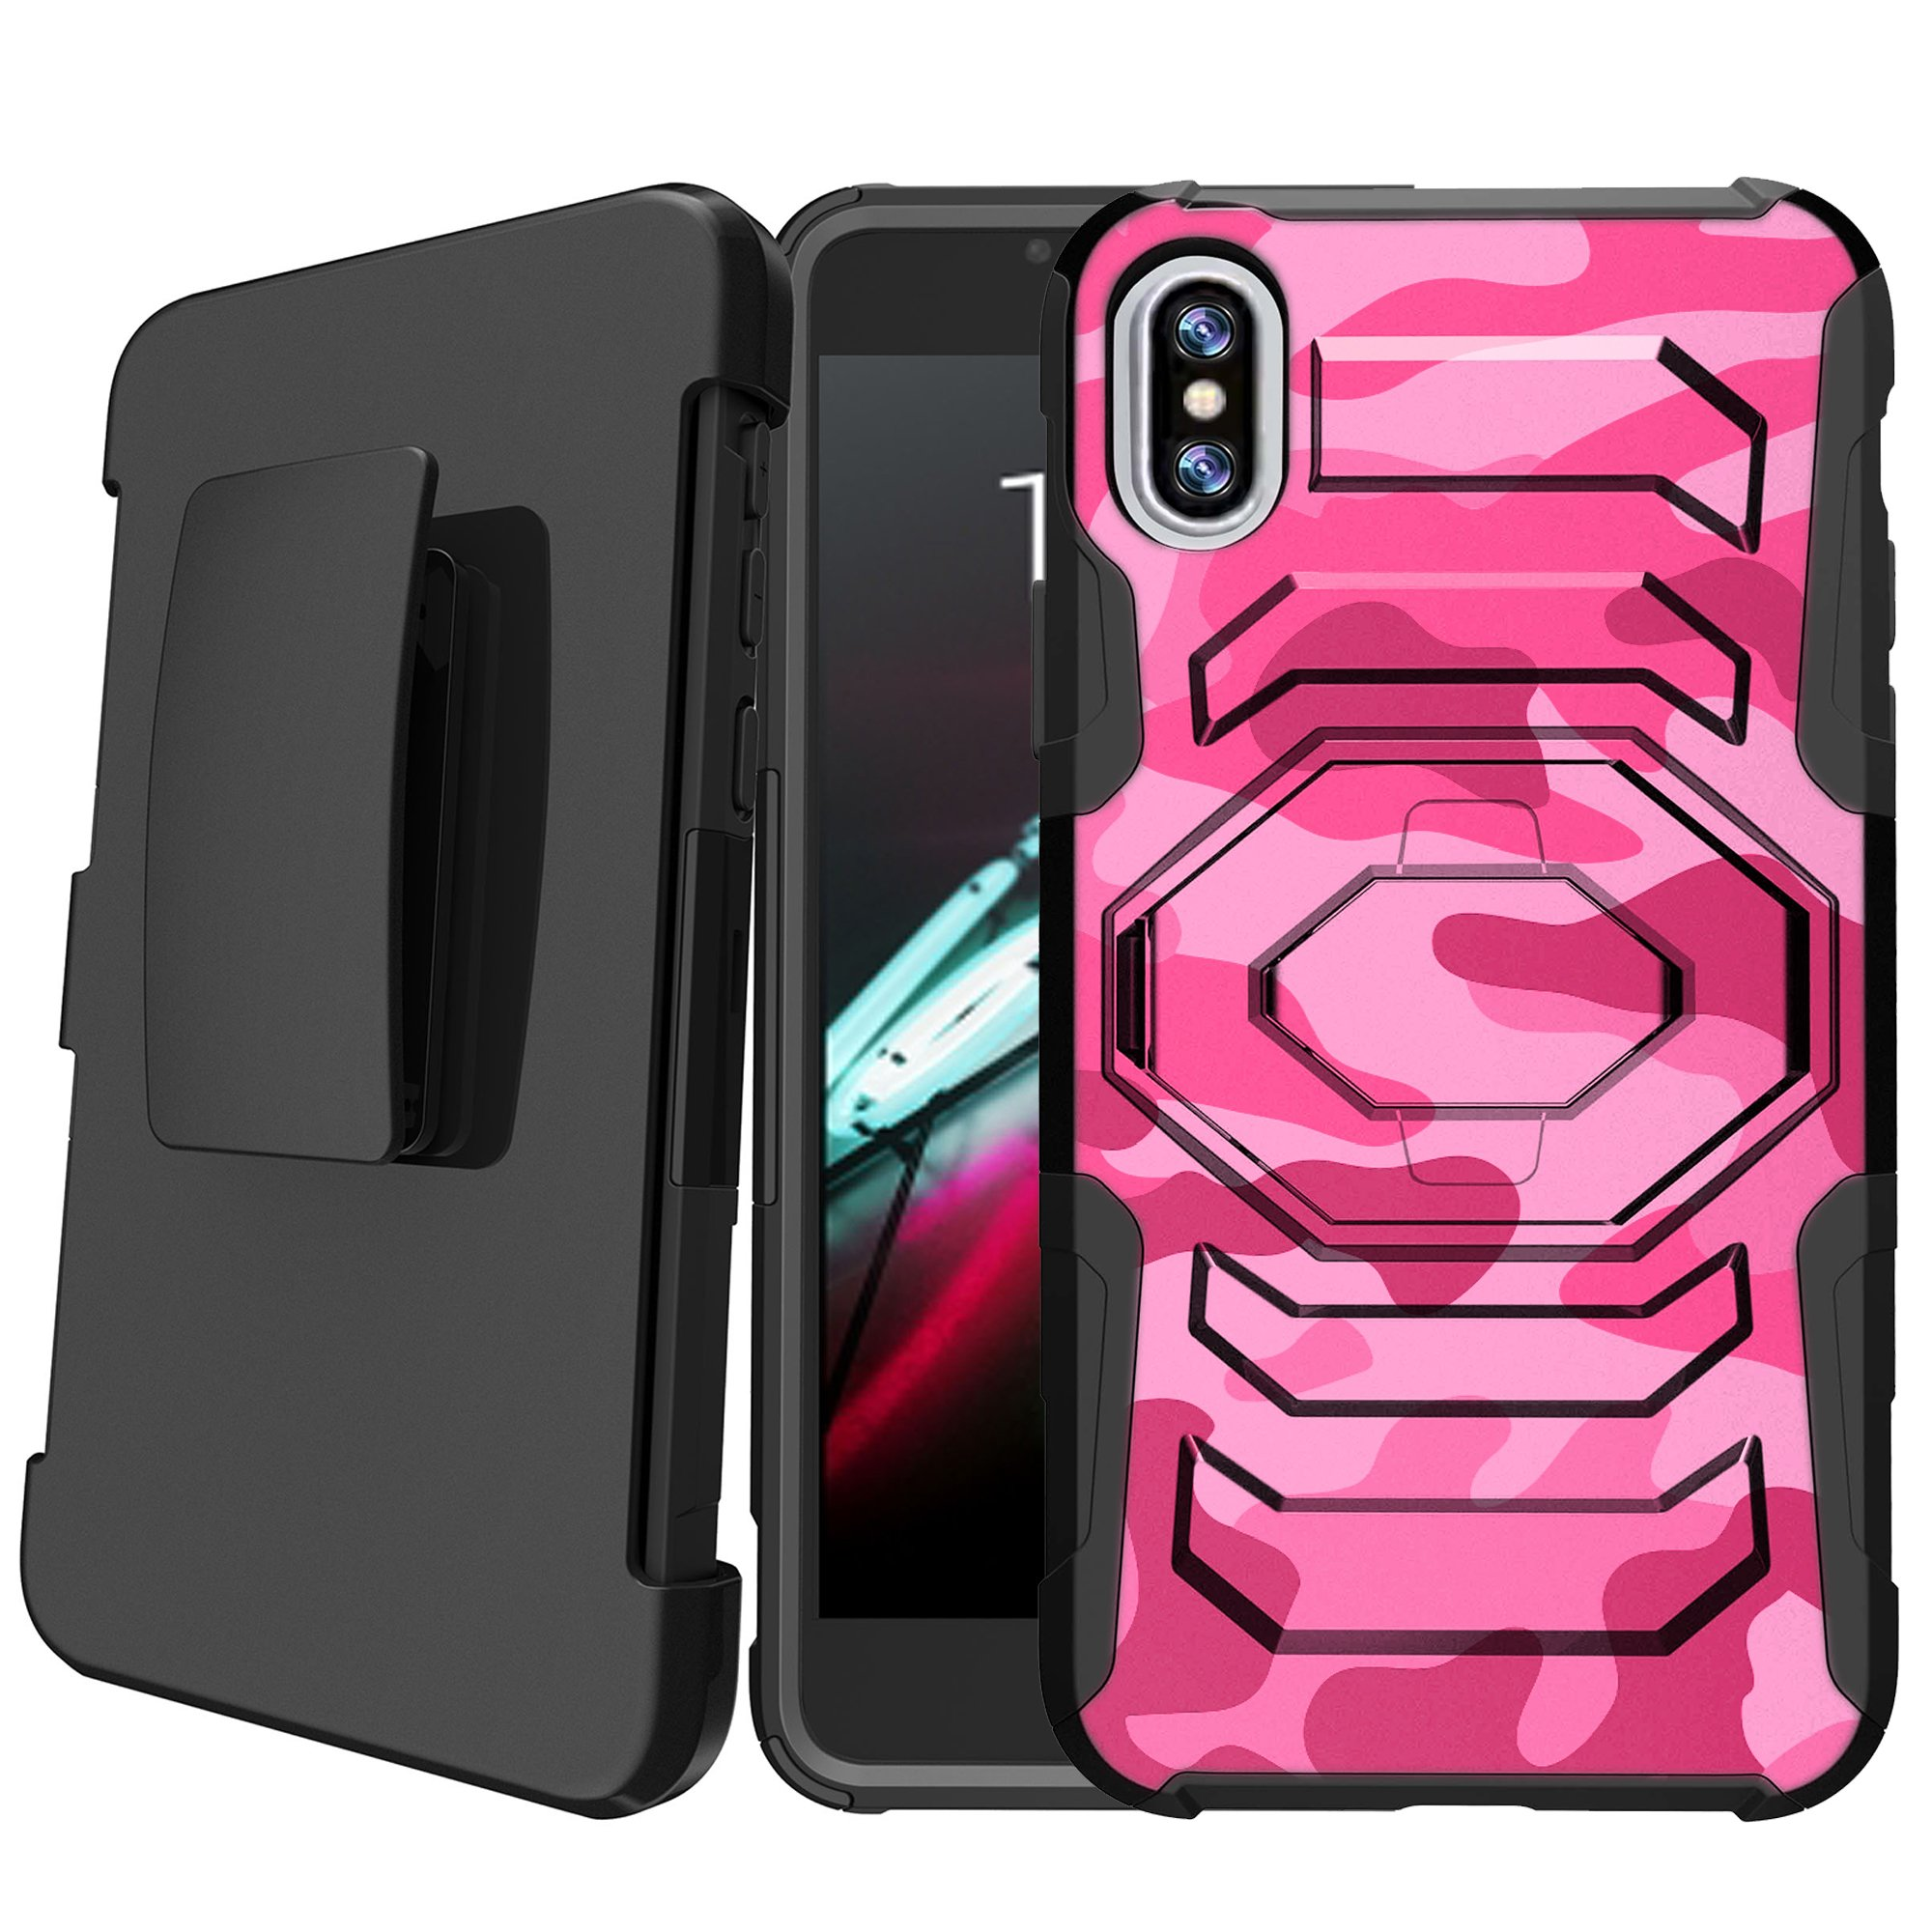 Apple iPhone X 2017 | iPhone 10 Holster Case [Camo Case][Camouflage Design Series] w/ Built-In Kickstand + Bonus Holster - Pink Camo